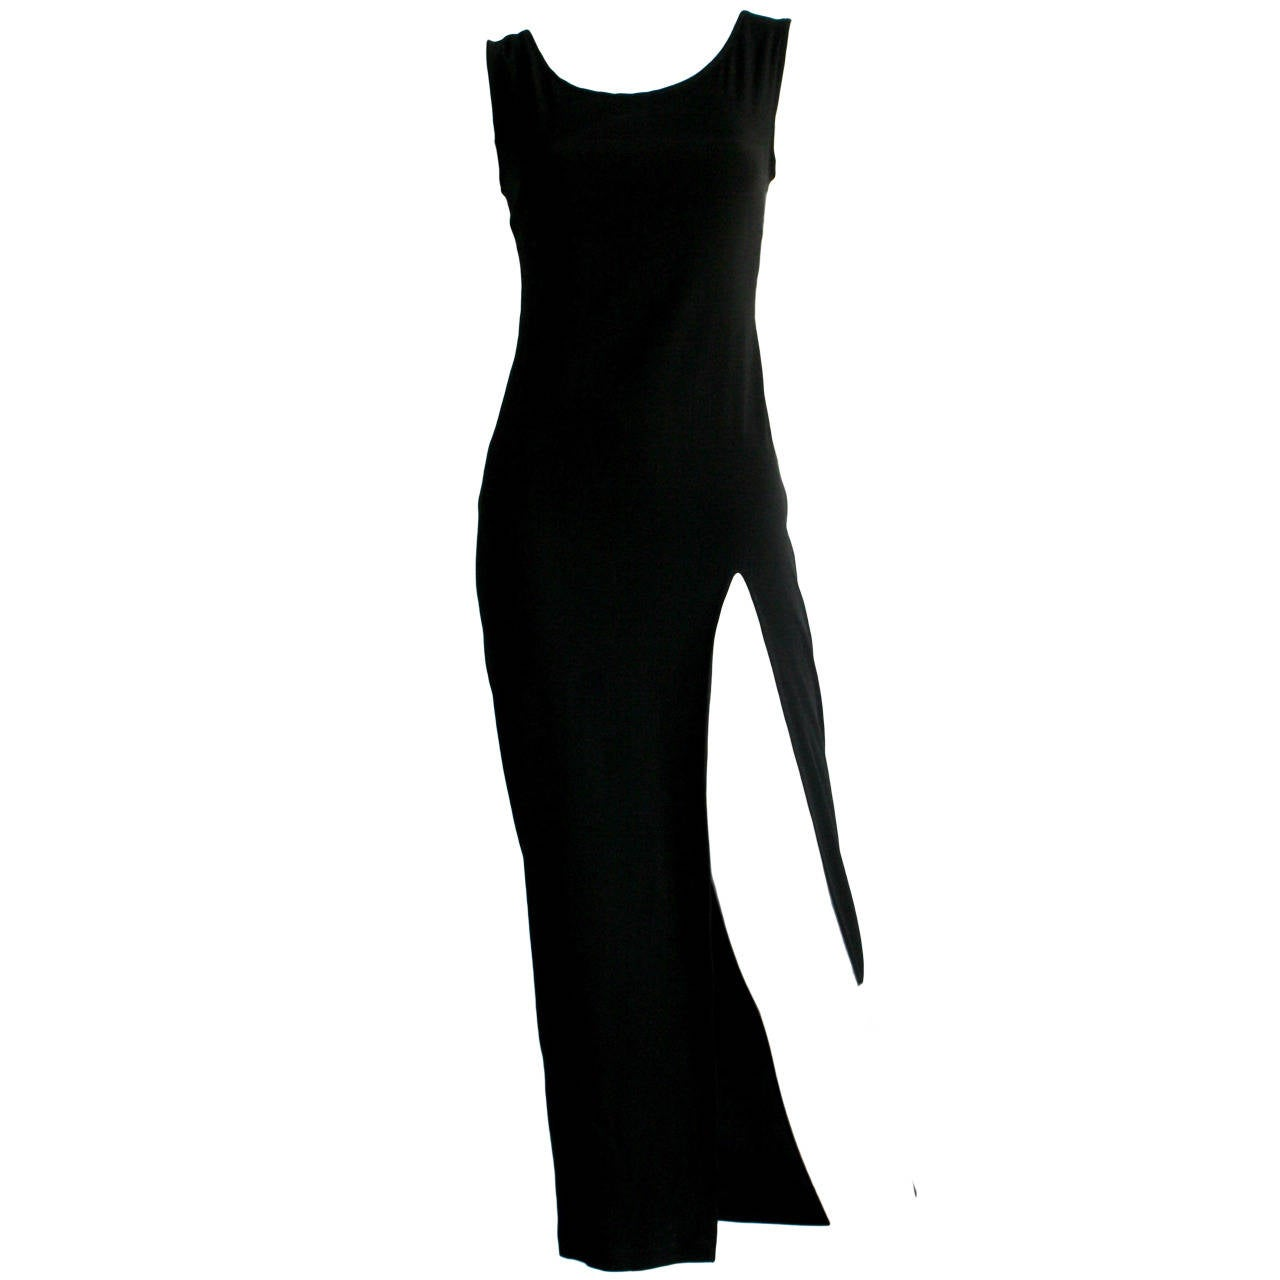 Sexy 1990s Vintage Jean Paul Gaultier Black dress w/ High Slit For Sale